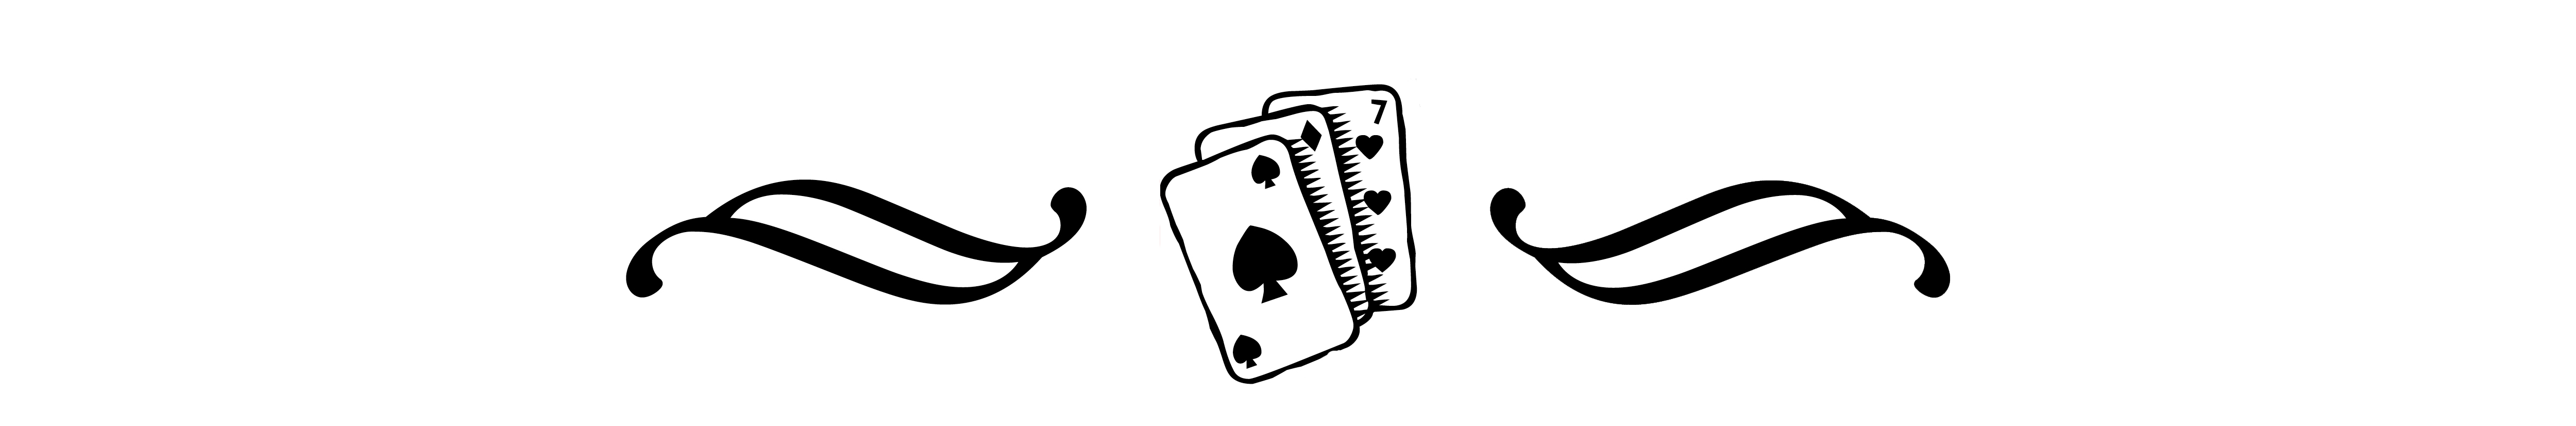 playing card divider